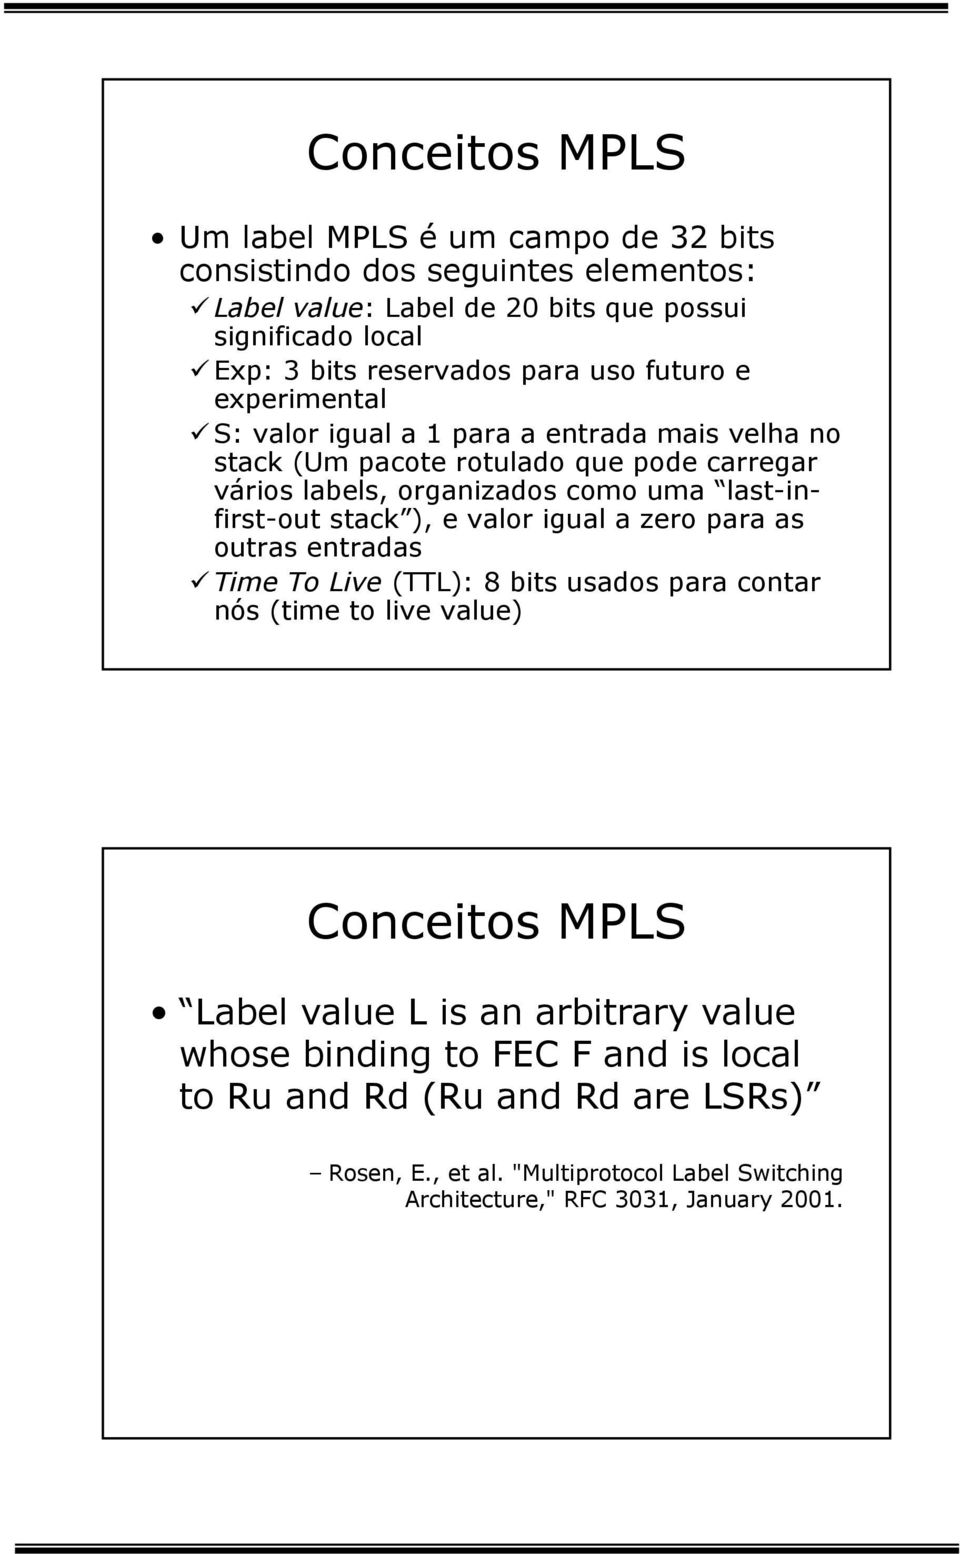 last-infirst-out stack ), e valor igual a zero para as outras entradas Time To Live (TTL): 8 bits usados para contar nós (time to live value) Conceitos MPLS Label value